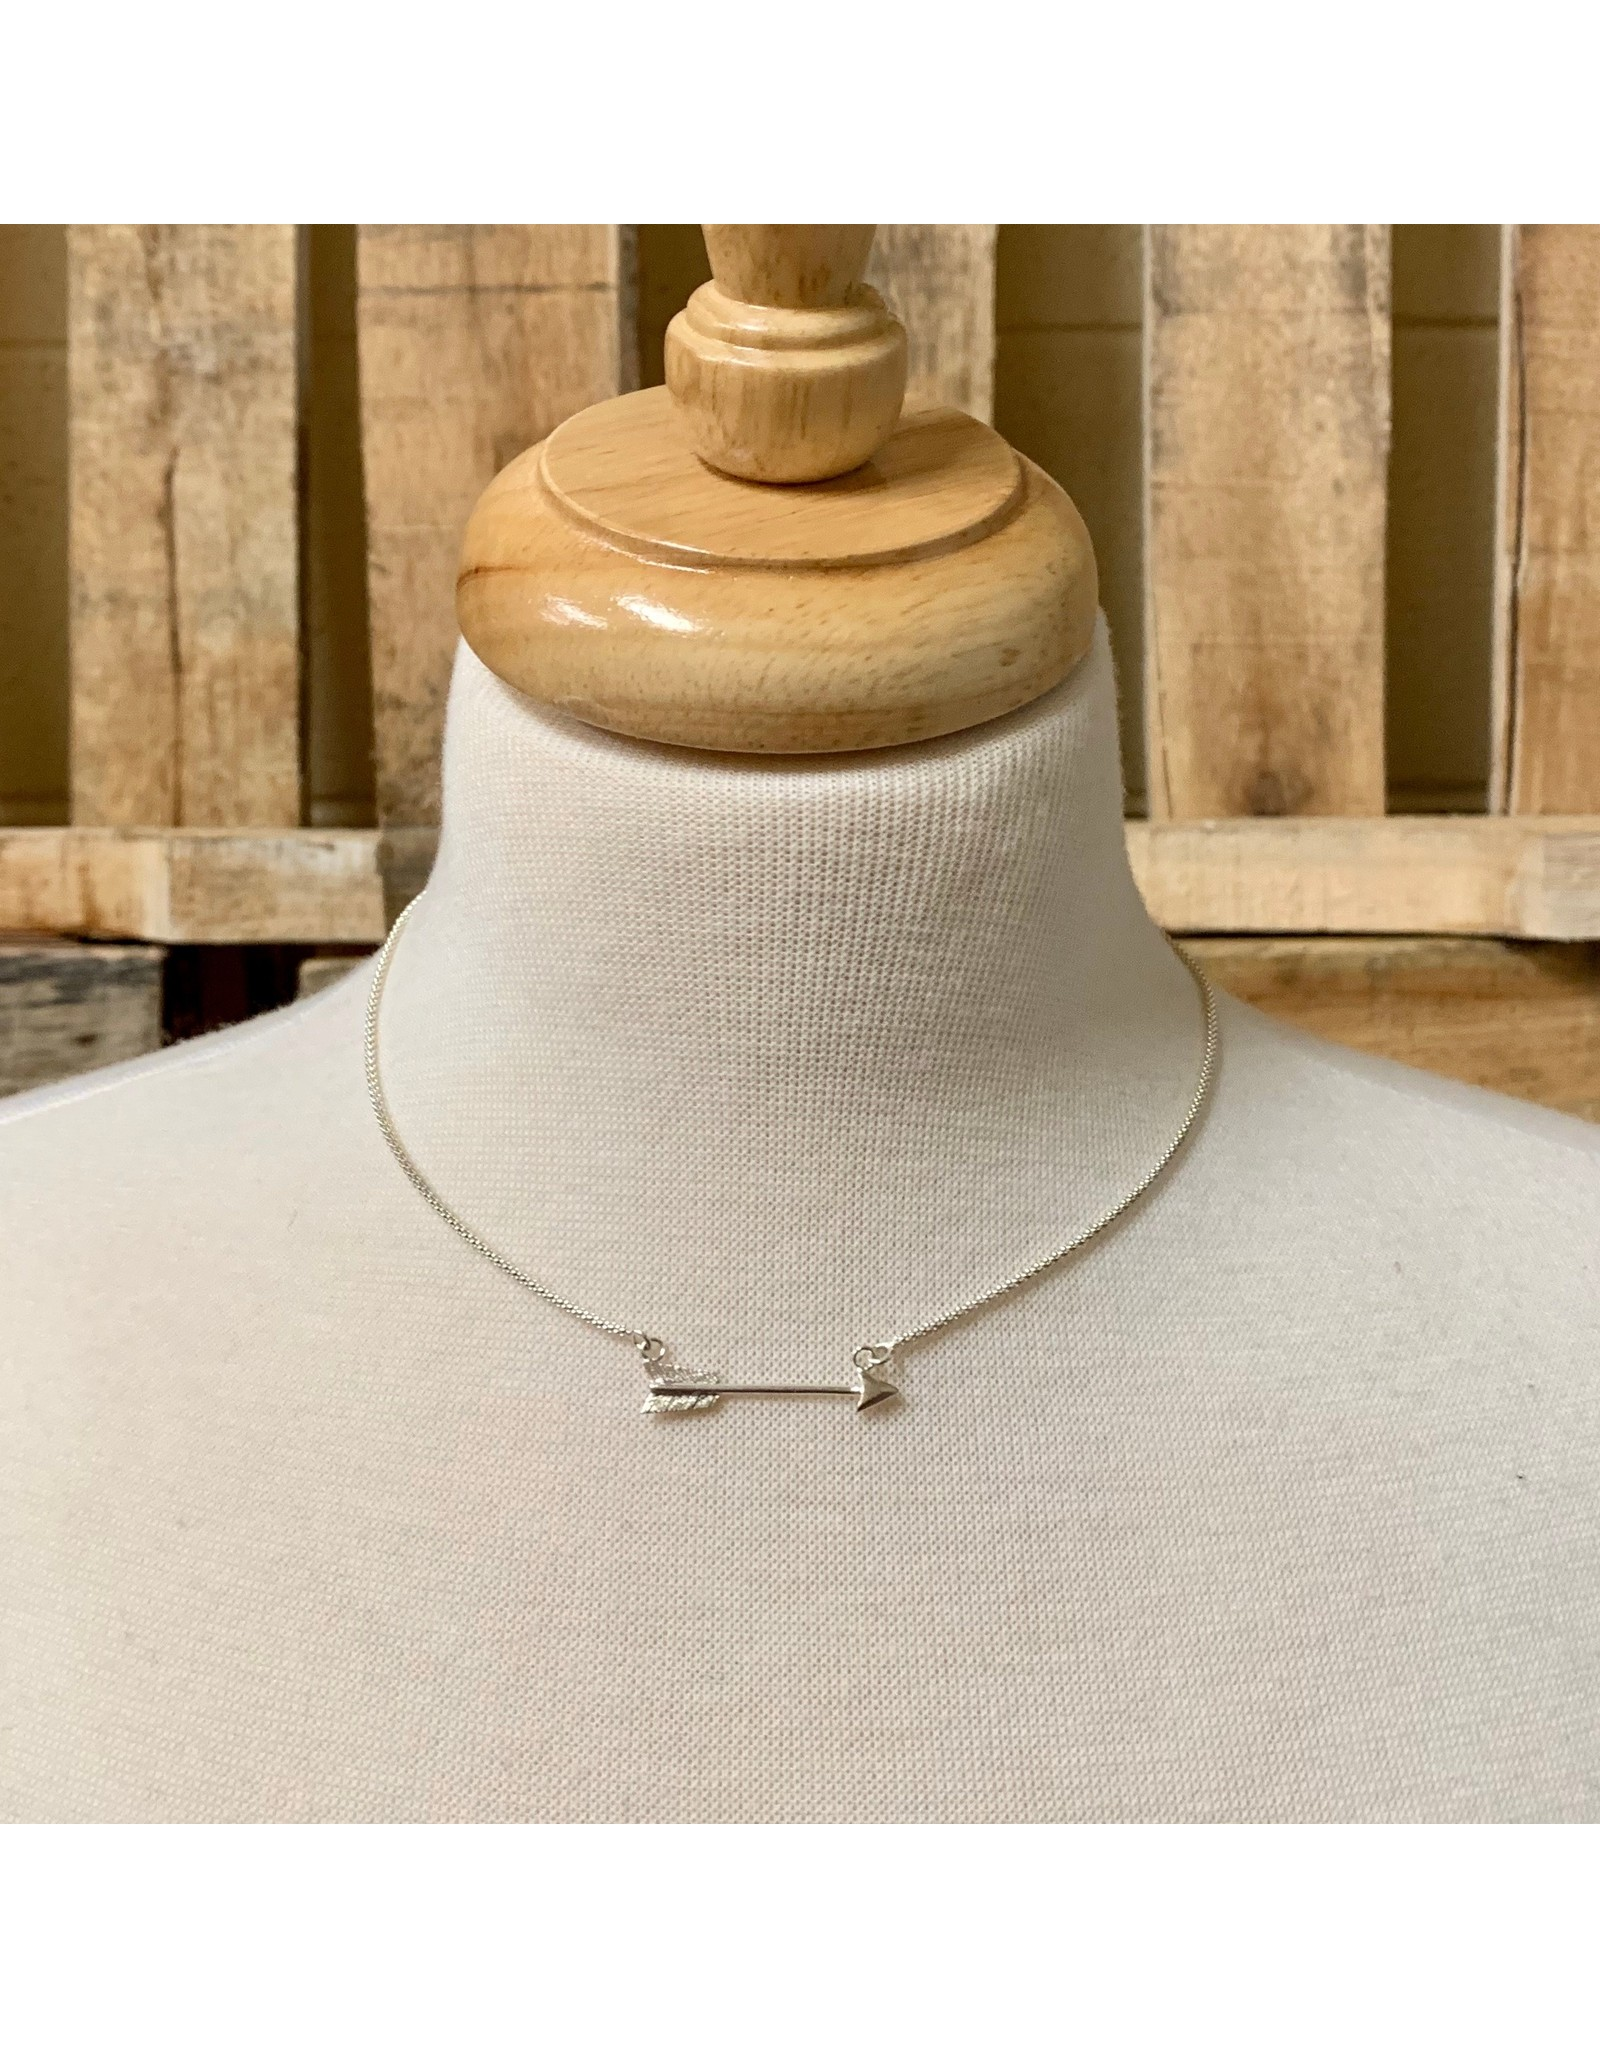 Ten Thousand Villages Silver Arrow Necklace